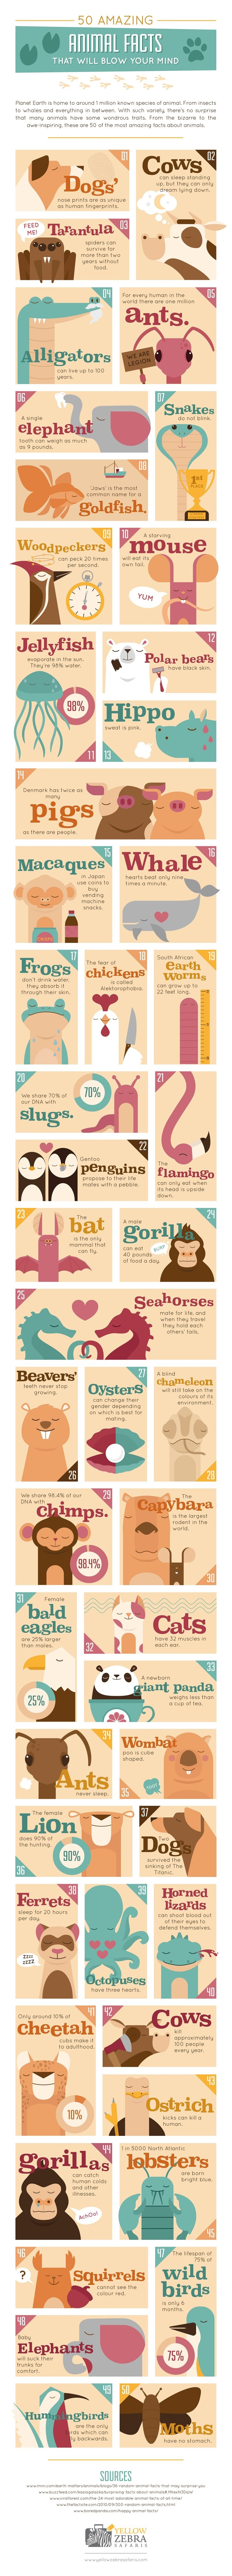 50 Amazing Animal Facts That Will Blow Your Mind #Infographic